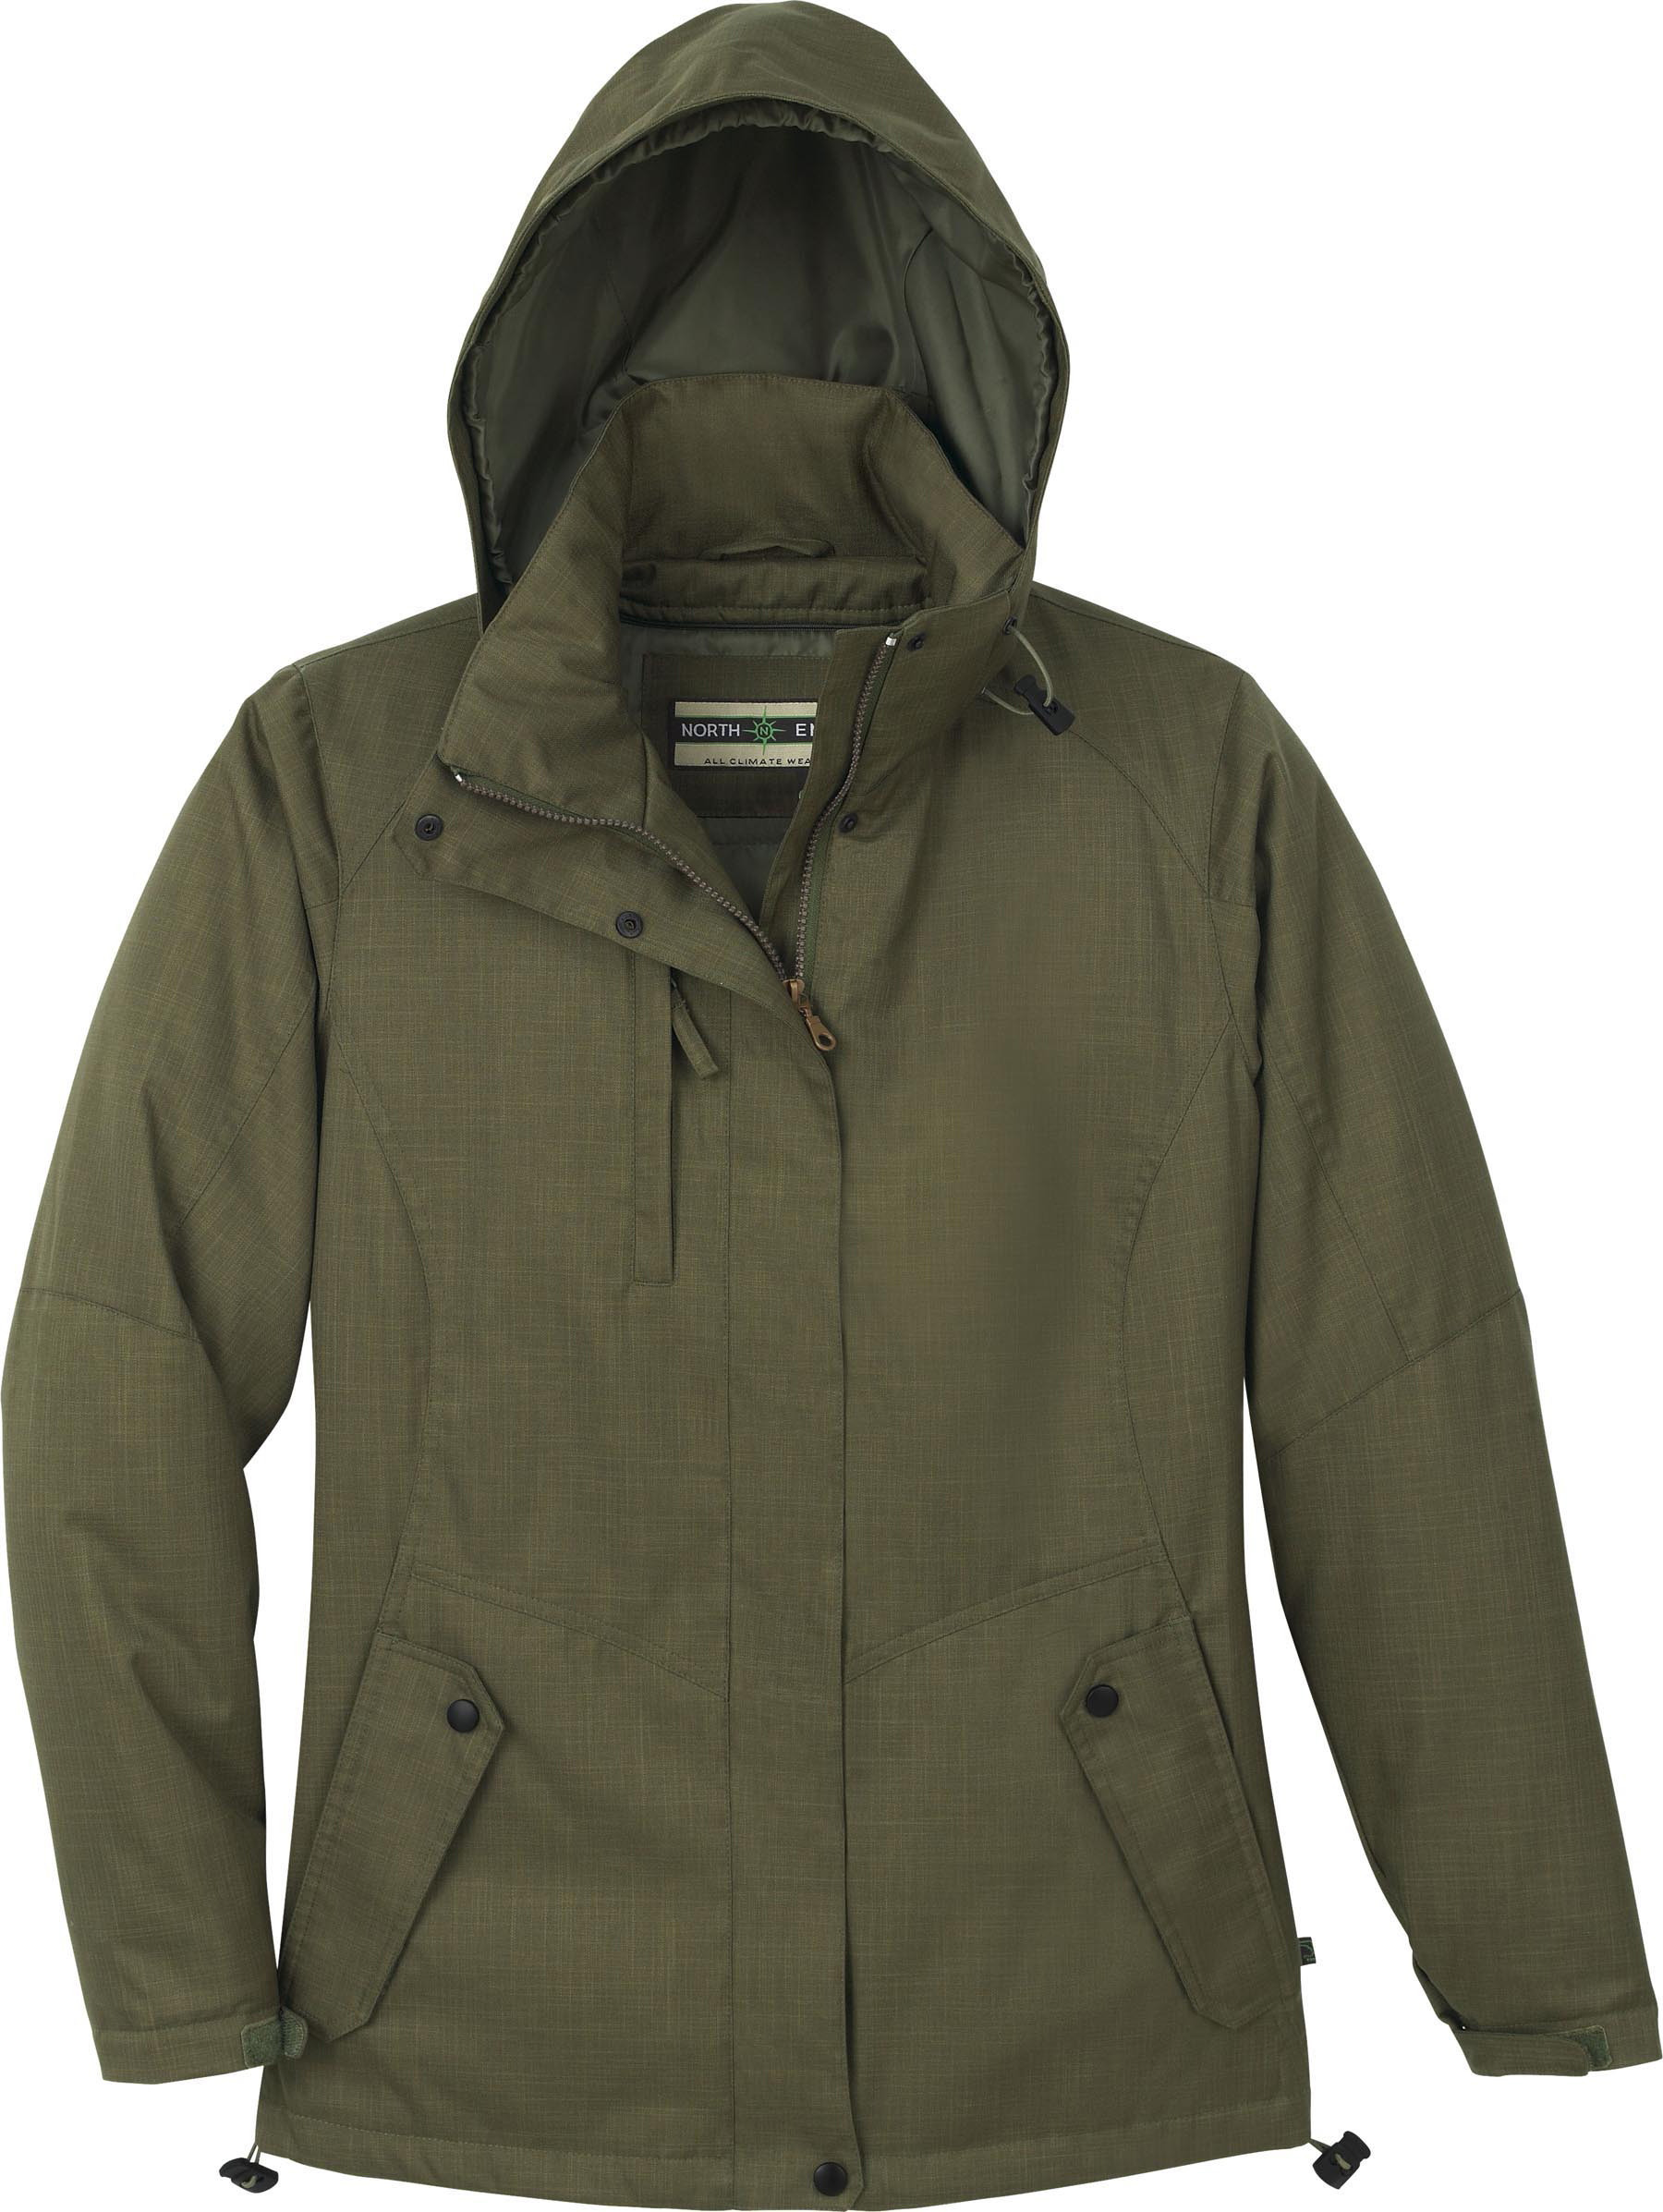 Ash City e.c.o Outerwear 78074 - Ladies' Recycled Polyester Insulated Textured Jacket